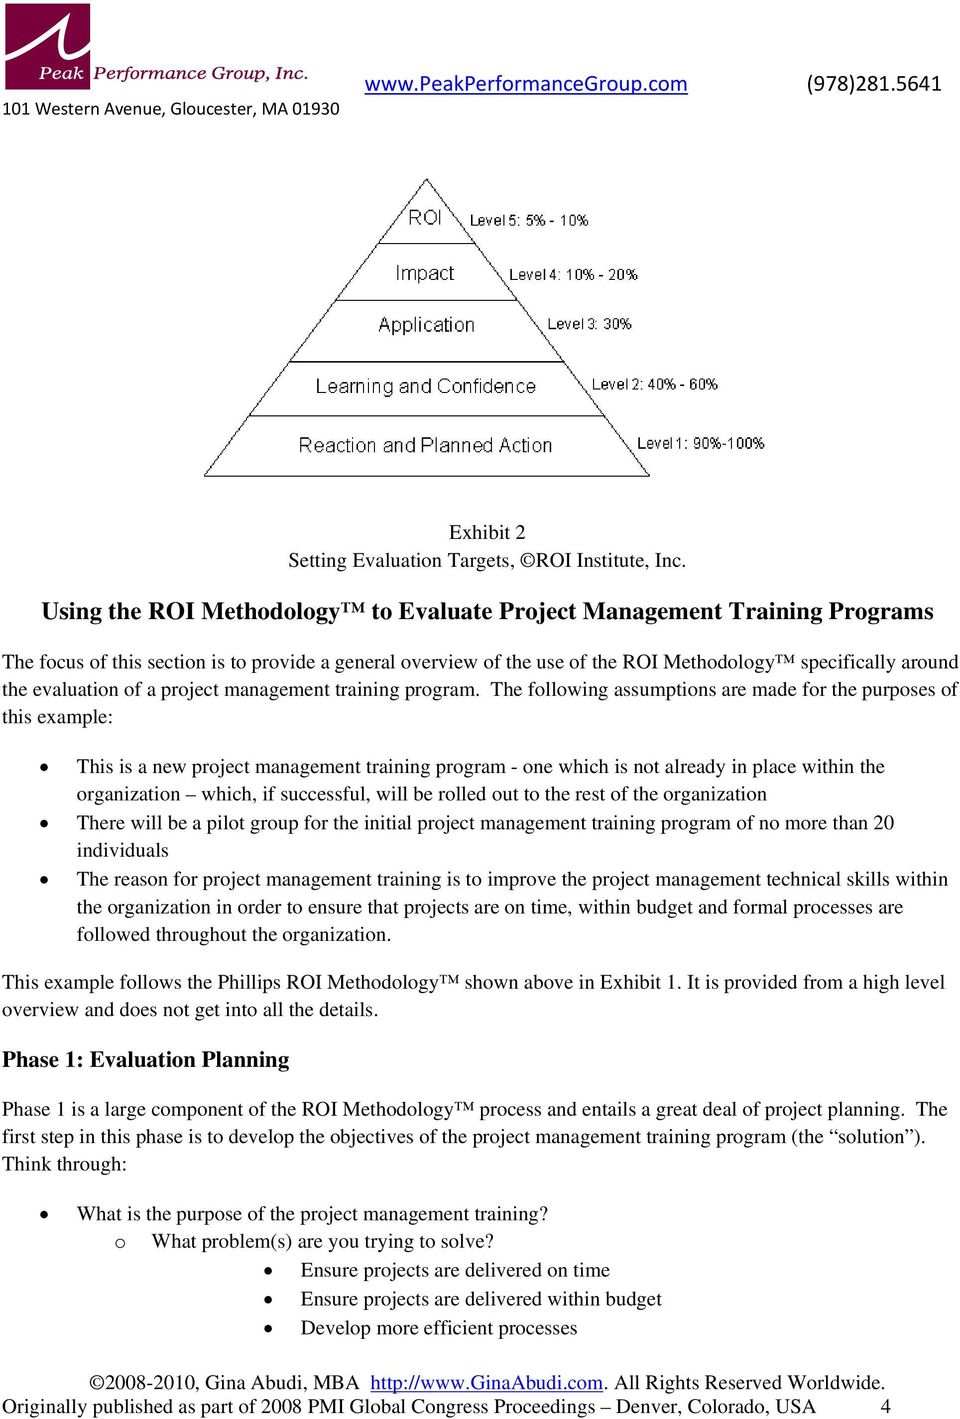 evaluation of a project management training program.